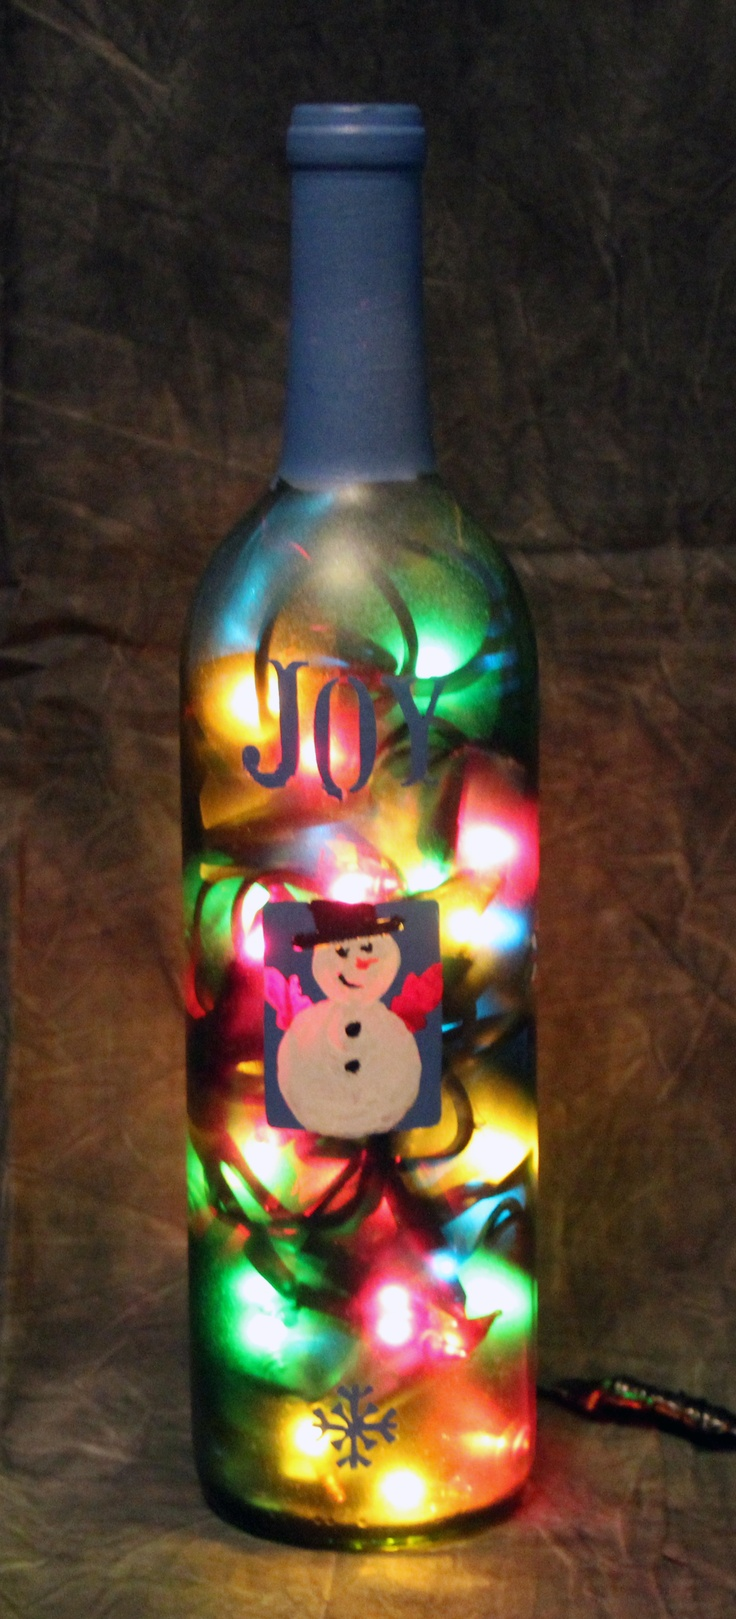 Small Wine Bottle Hand Painted With Snowman And Other